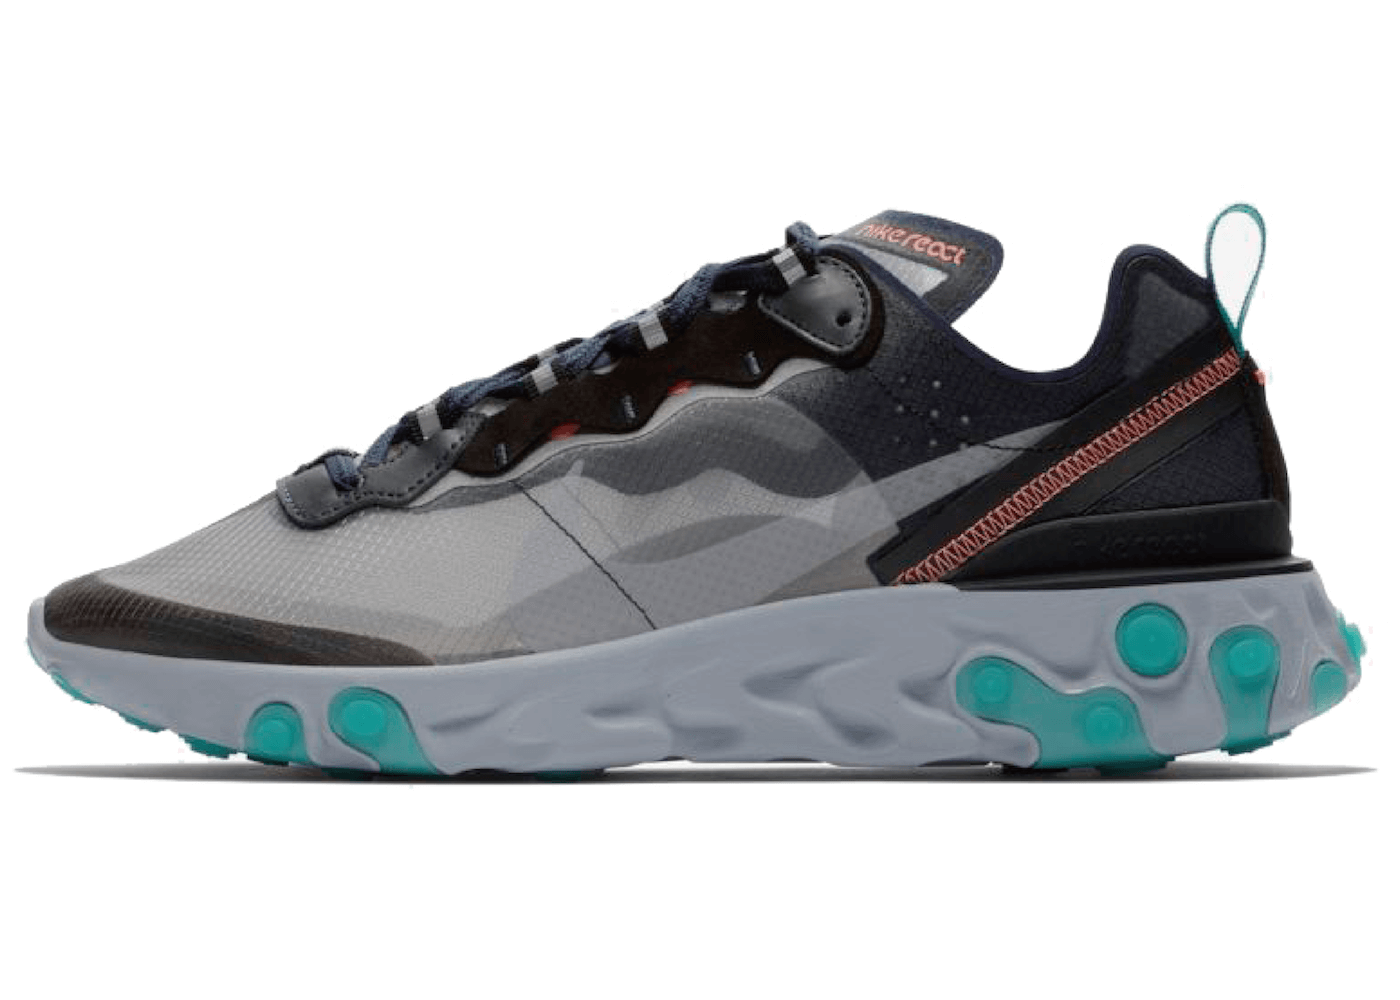 Nike React Element 87 Black Neptune Greenの写真